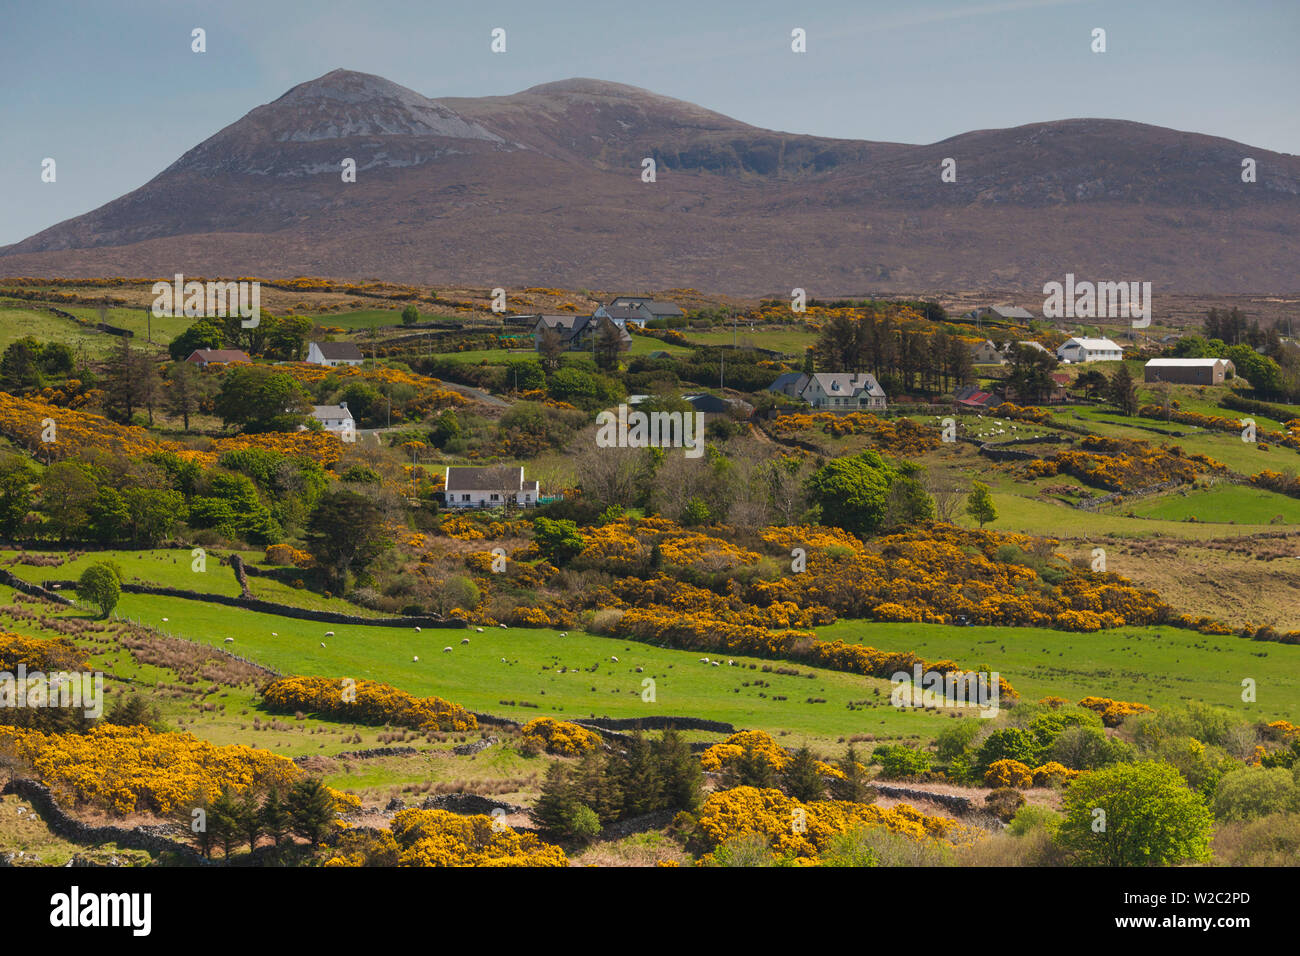 Ireland, County Donegal, Dunfanaghy, landscape by Muckish Mountain - Stock Image